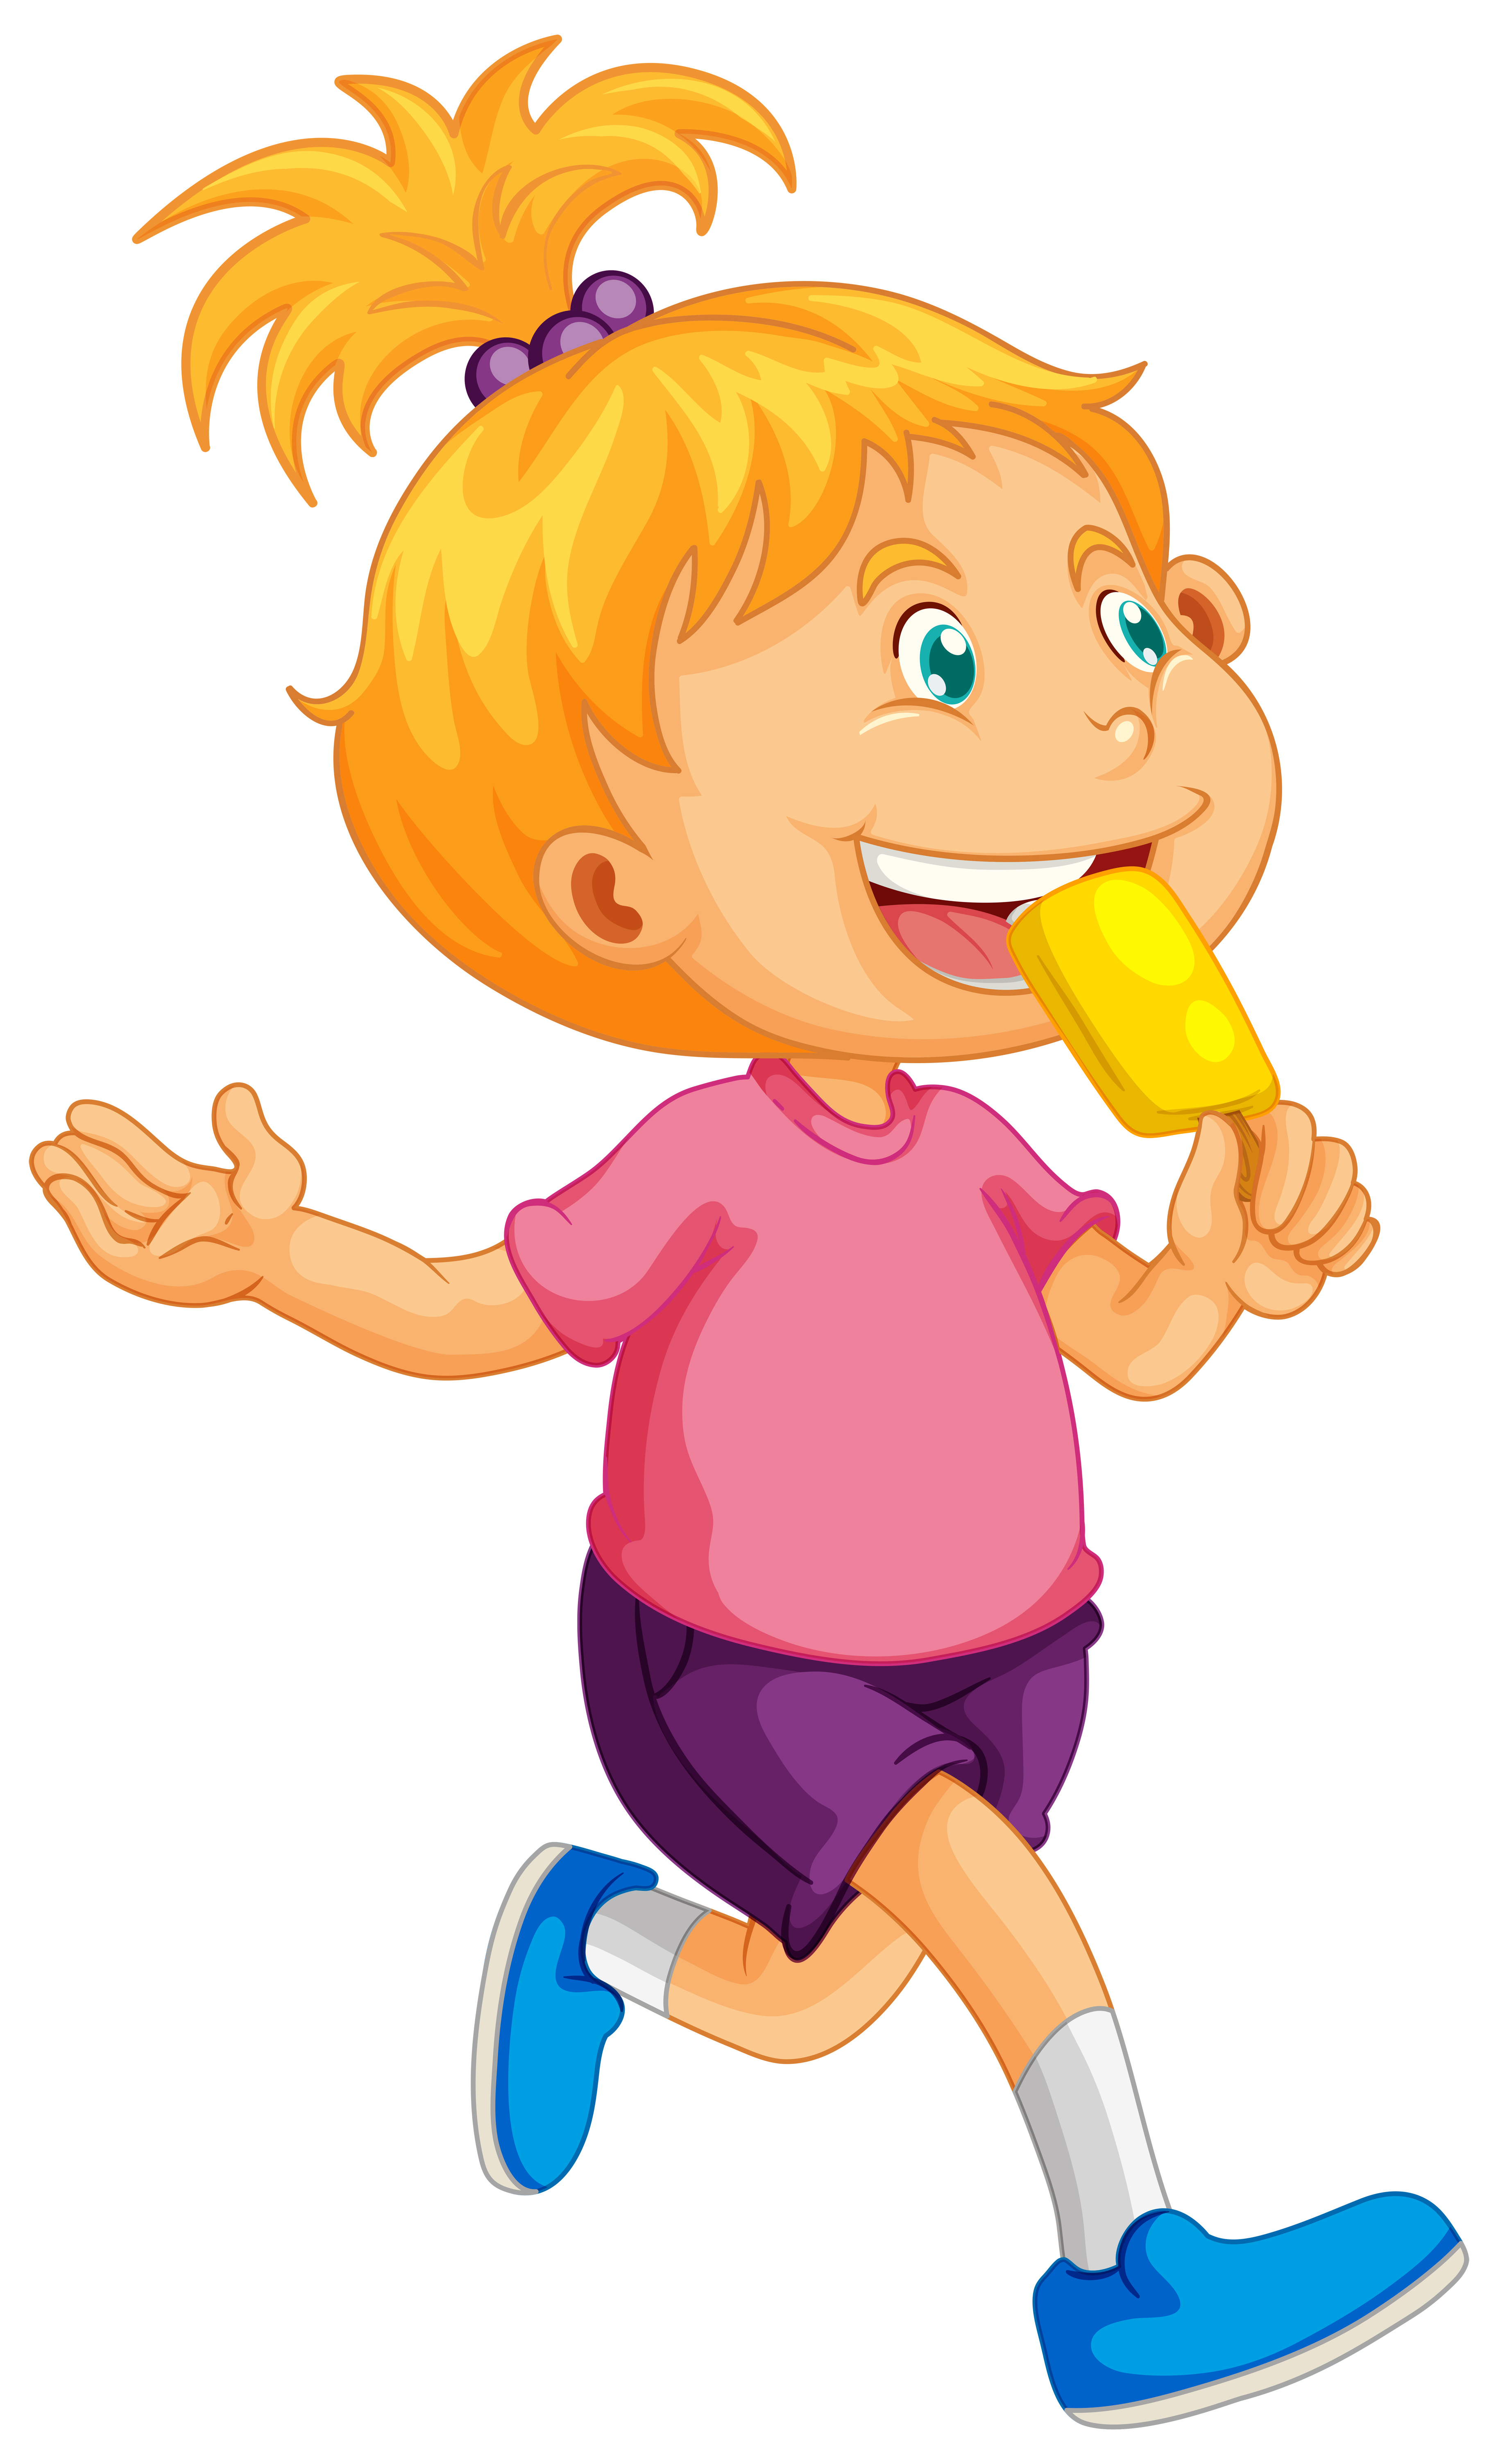 Little girl eating popsicle - Download Free Vectors ...